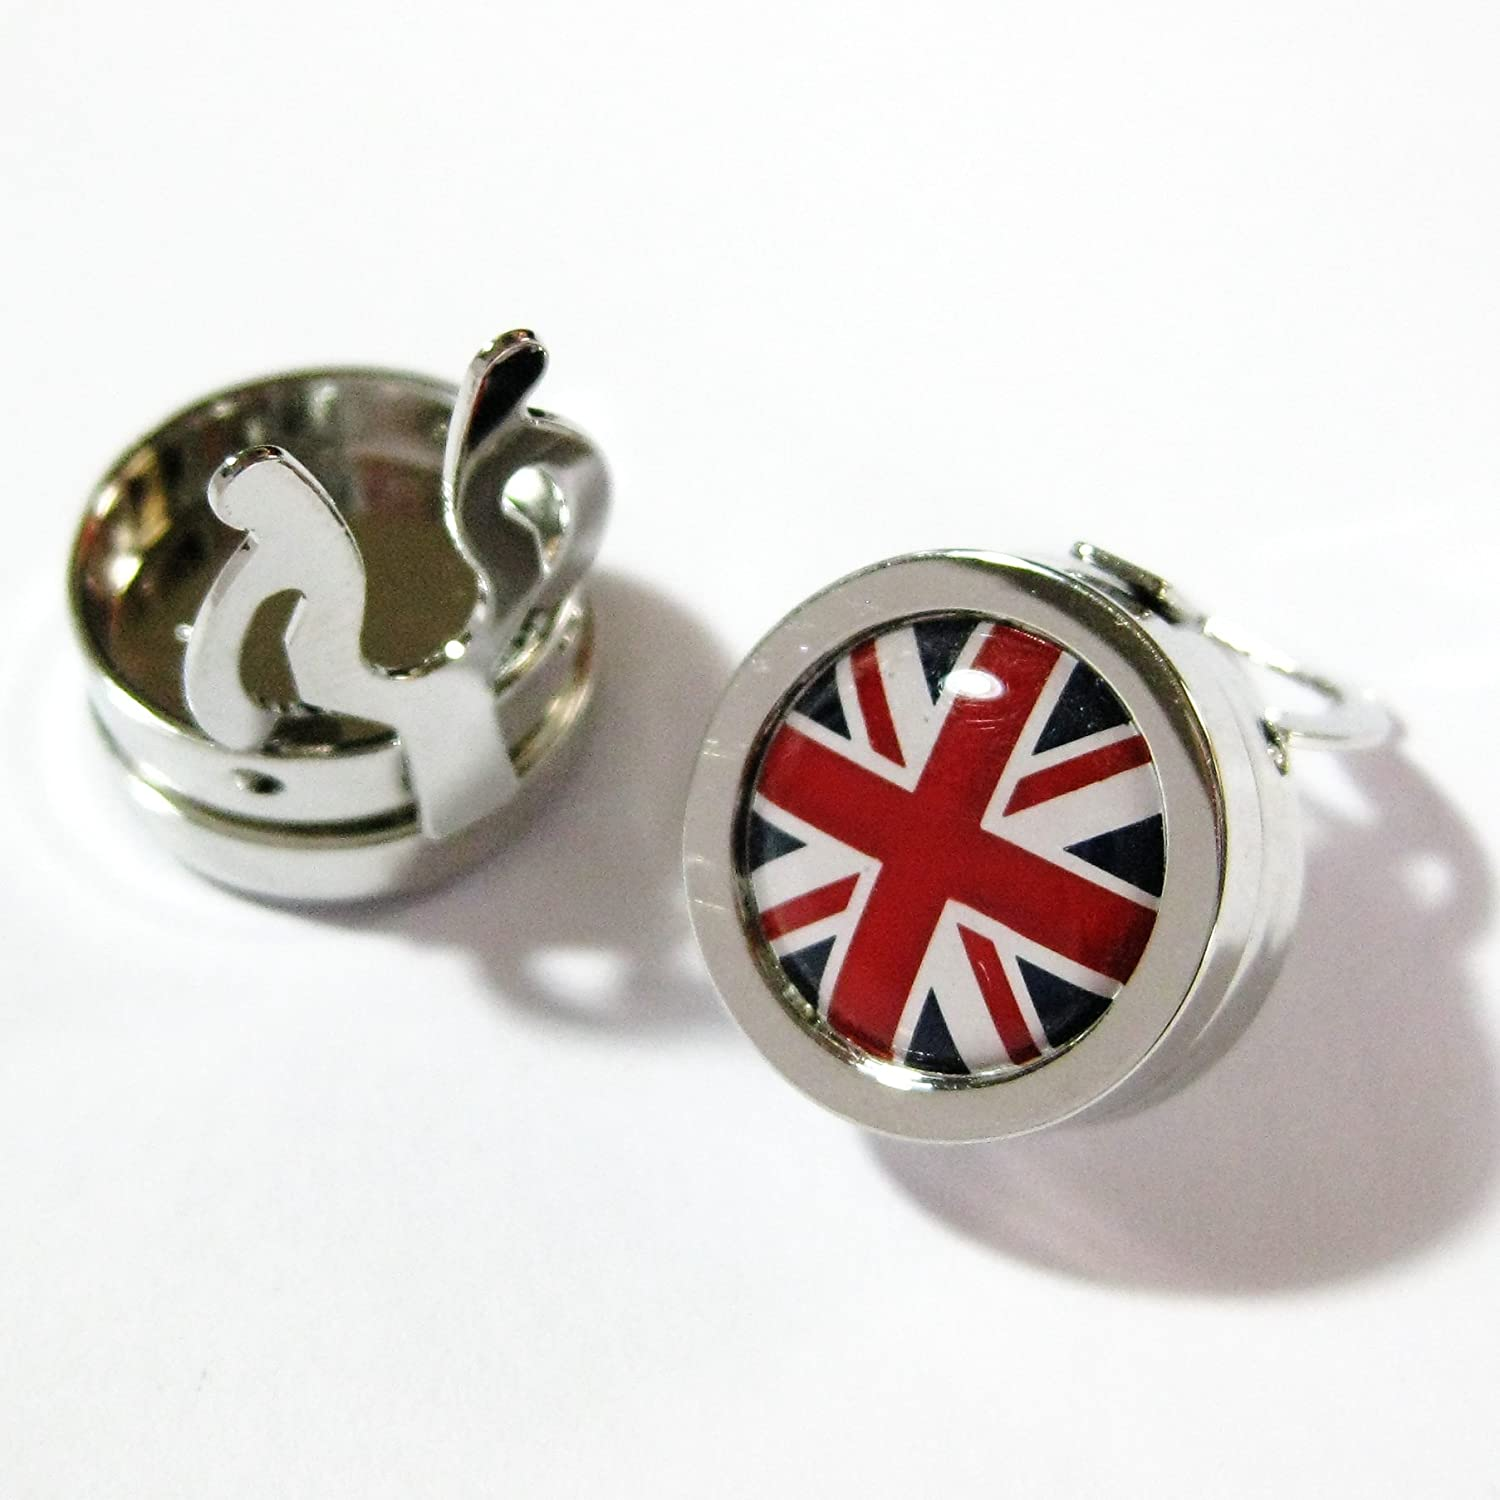 The5thL Round Union Jack Flag Flag Flag Button Covers UK British 130022-1 ce6f19